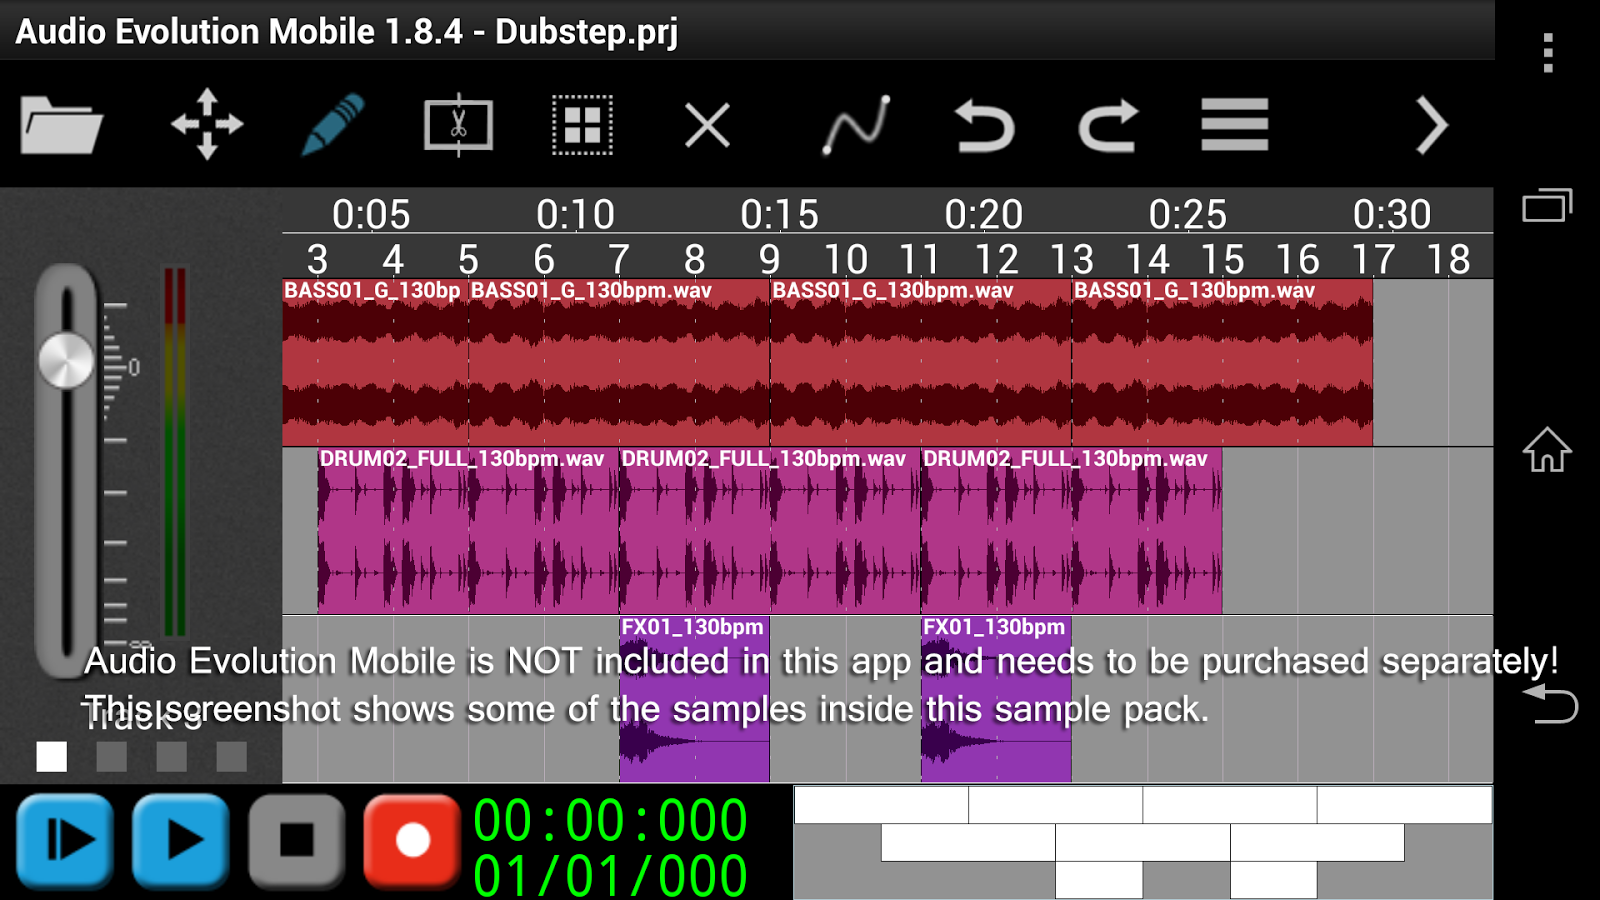 Monster Dubstep for AEMobile- screenshot